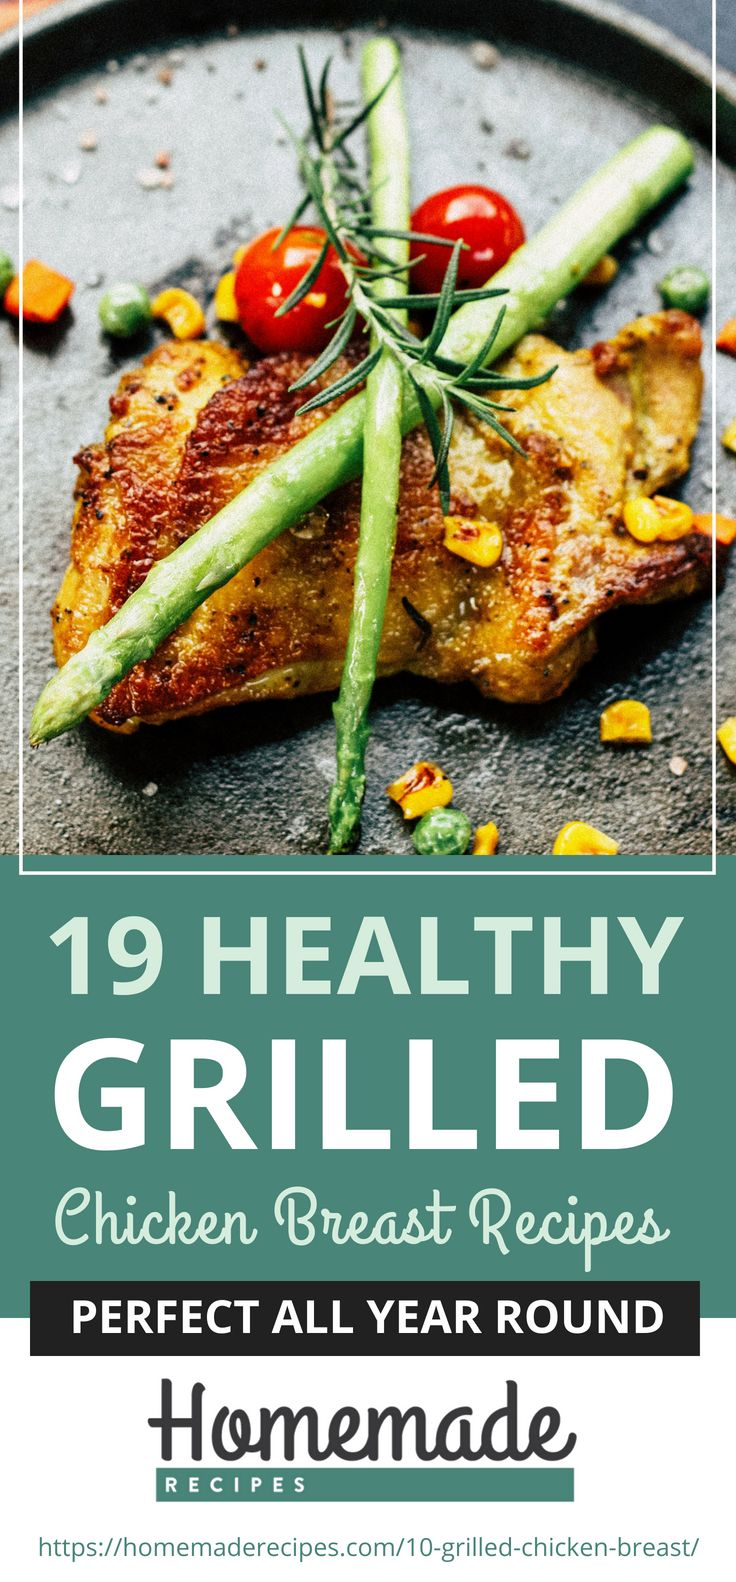 Pinterest Placard | 19 Healthy Grilled Chicken Breast Recipes Perfect All Year Round